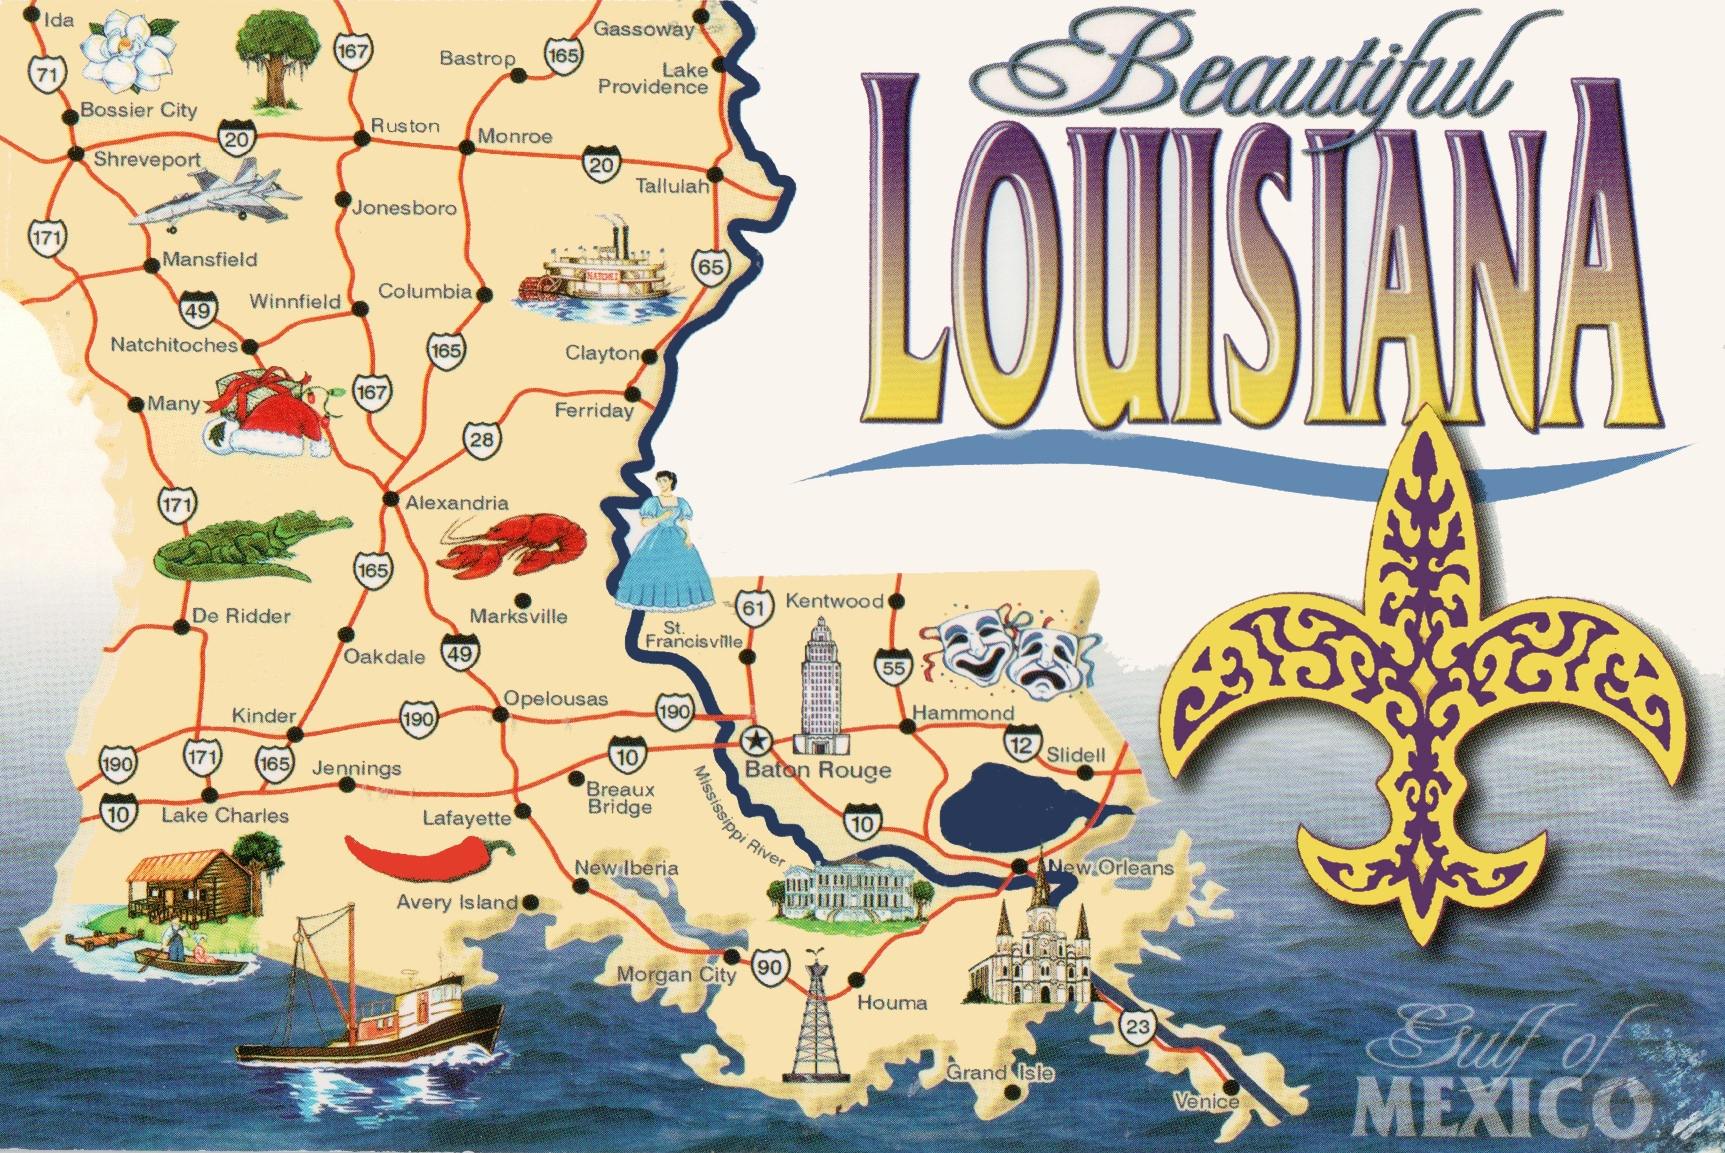 Pictorial travel map of Louisiana